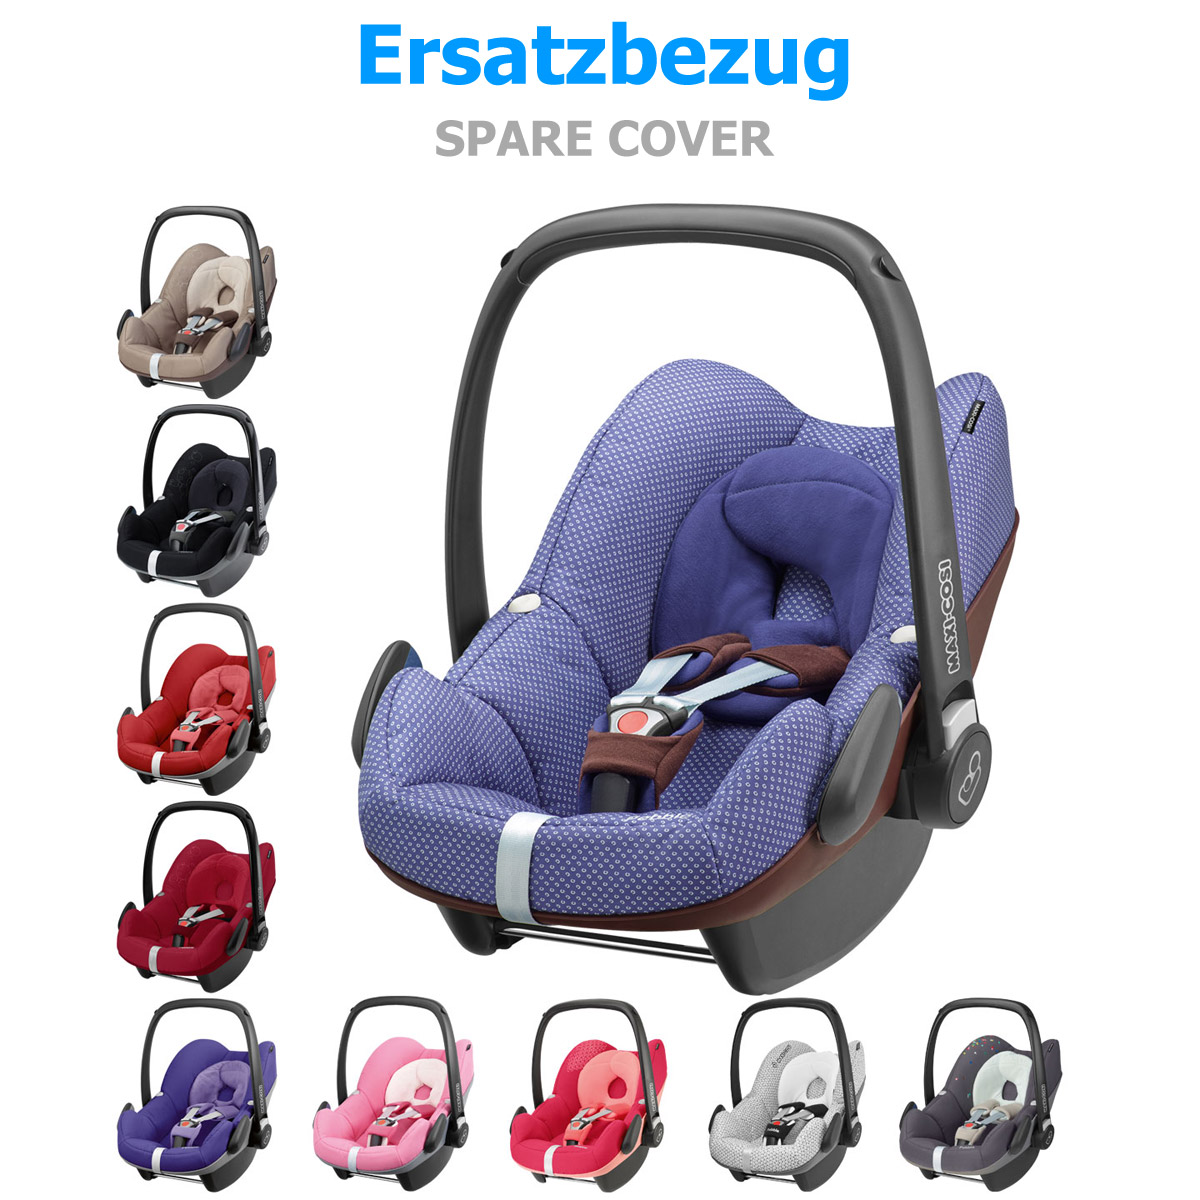 maxi cosi ersatzbezug f r pebble design 2014 farbe w hlbar neu ebay. Black Bedroom Furniture Sets. Home Design Ideas